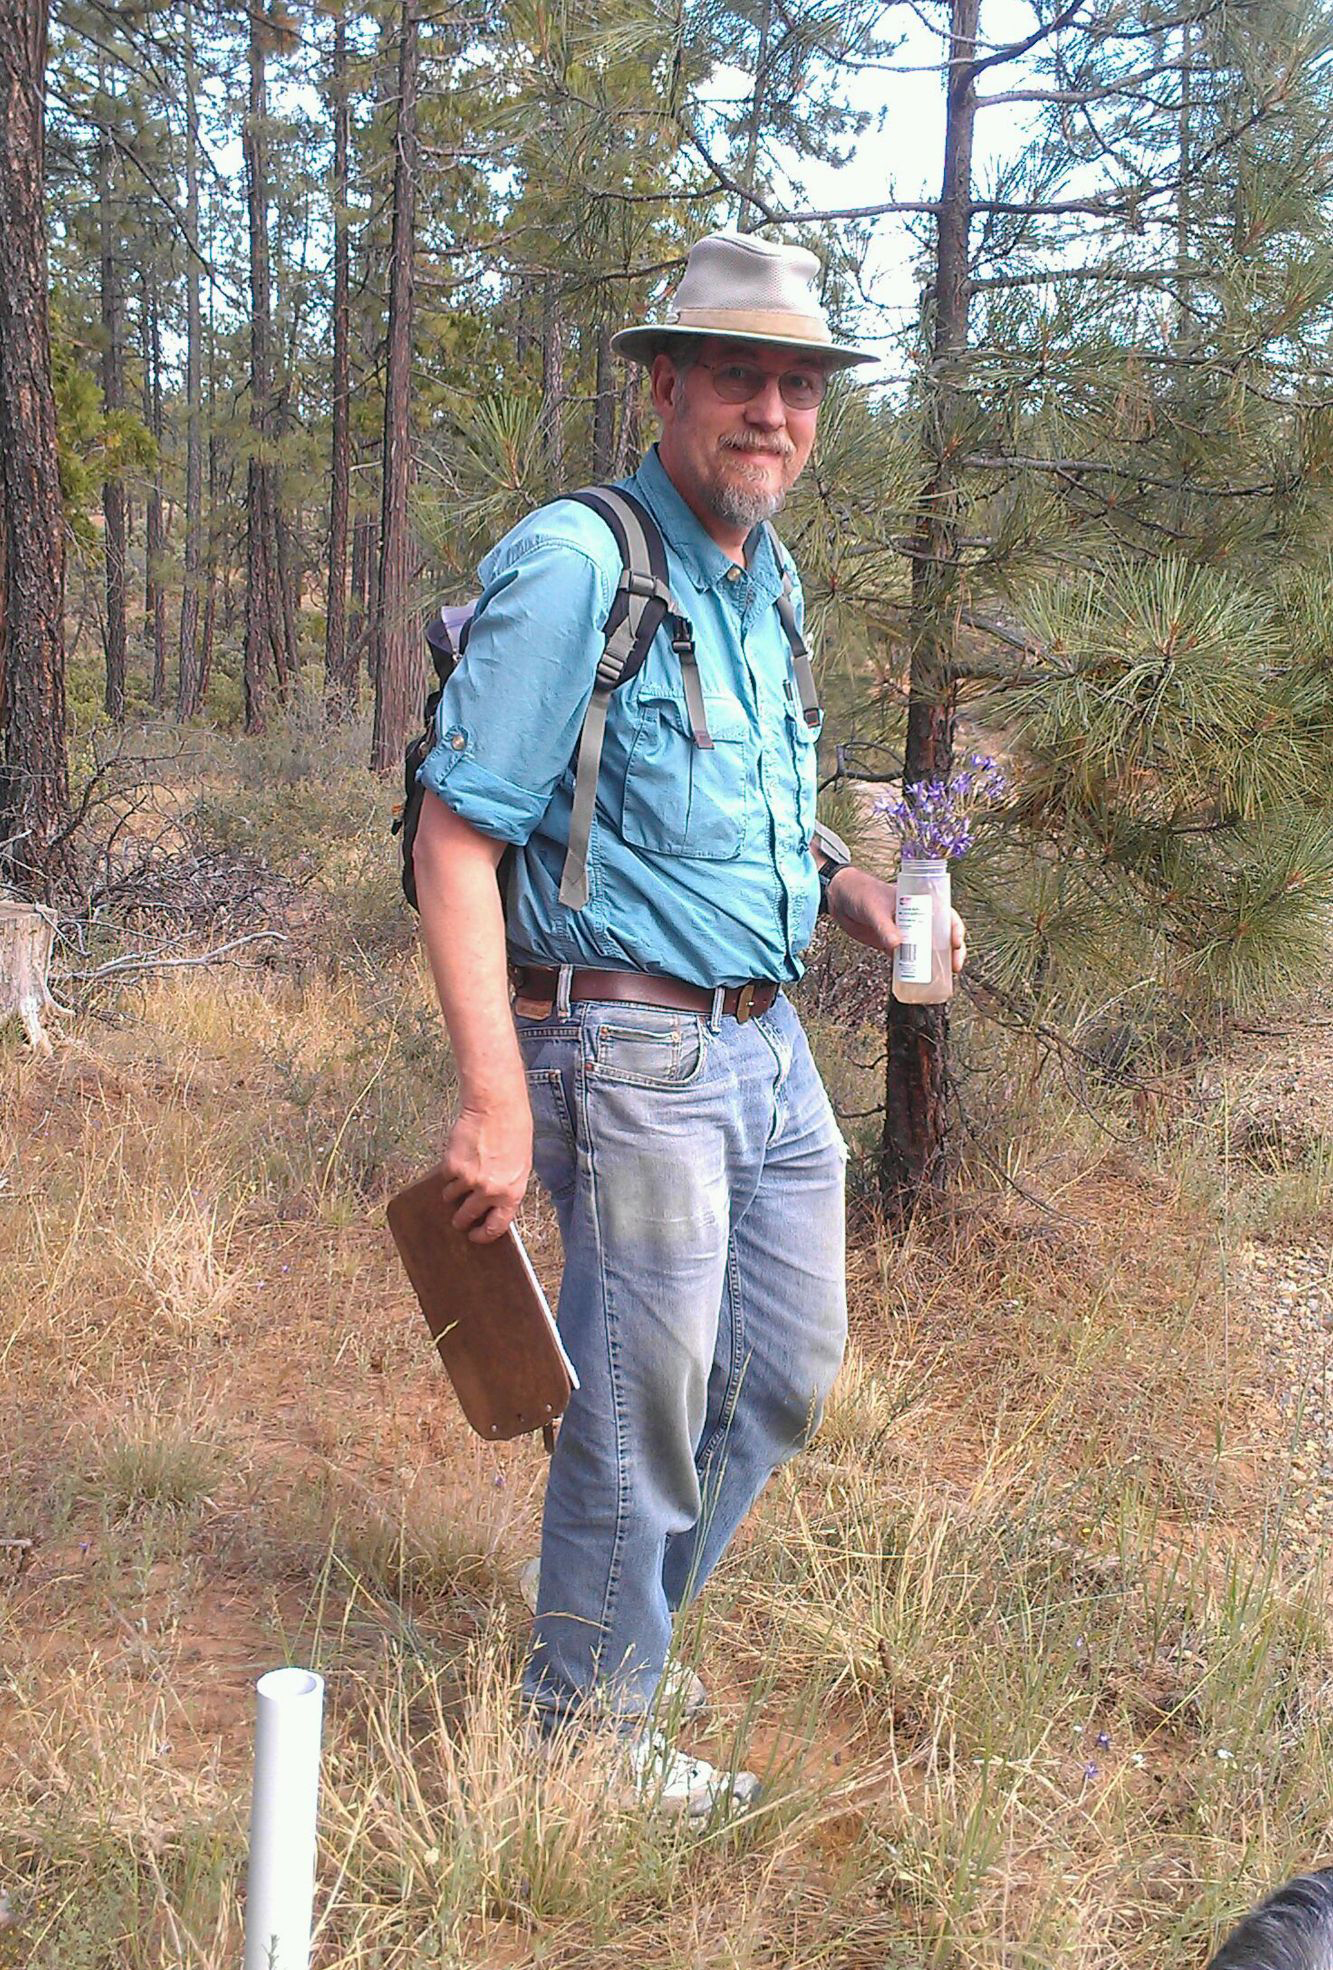 man in blue shirt, grey pants and khaki hat in a forest